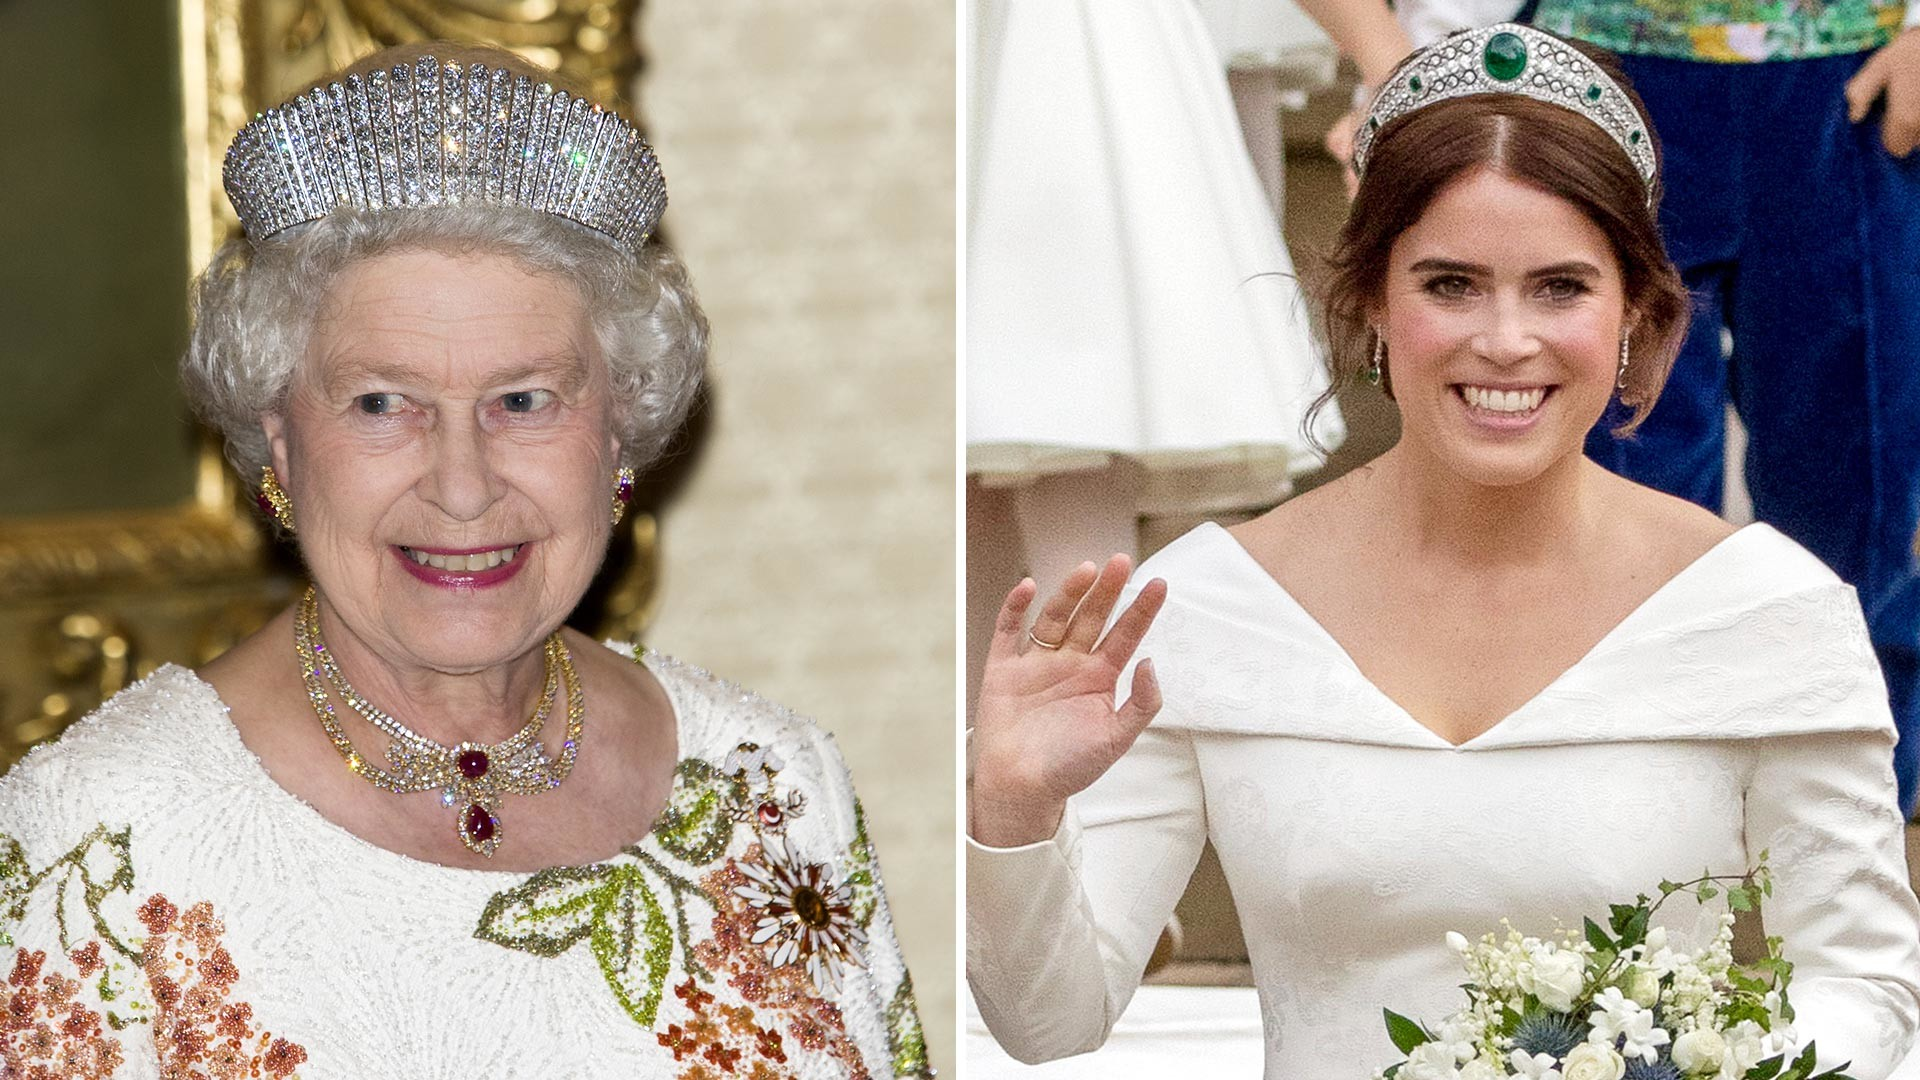 Queen'S State Visit To Turkey in 2008 and the wedding of Princess Eugenie and Jack Brooksbank in 2018.